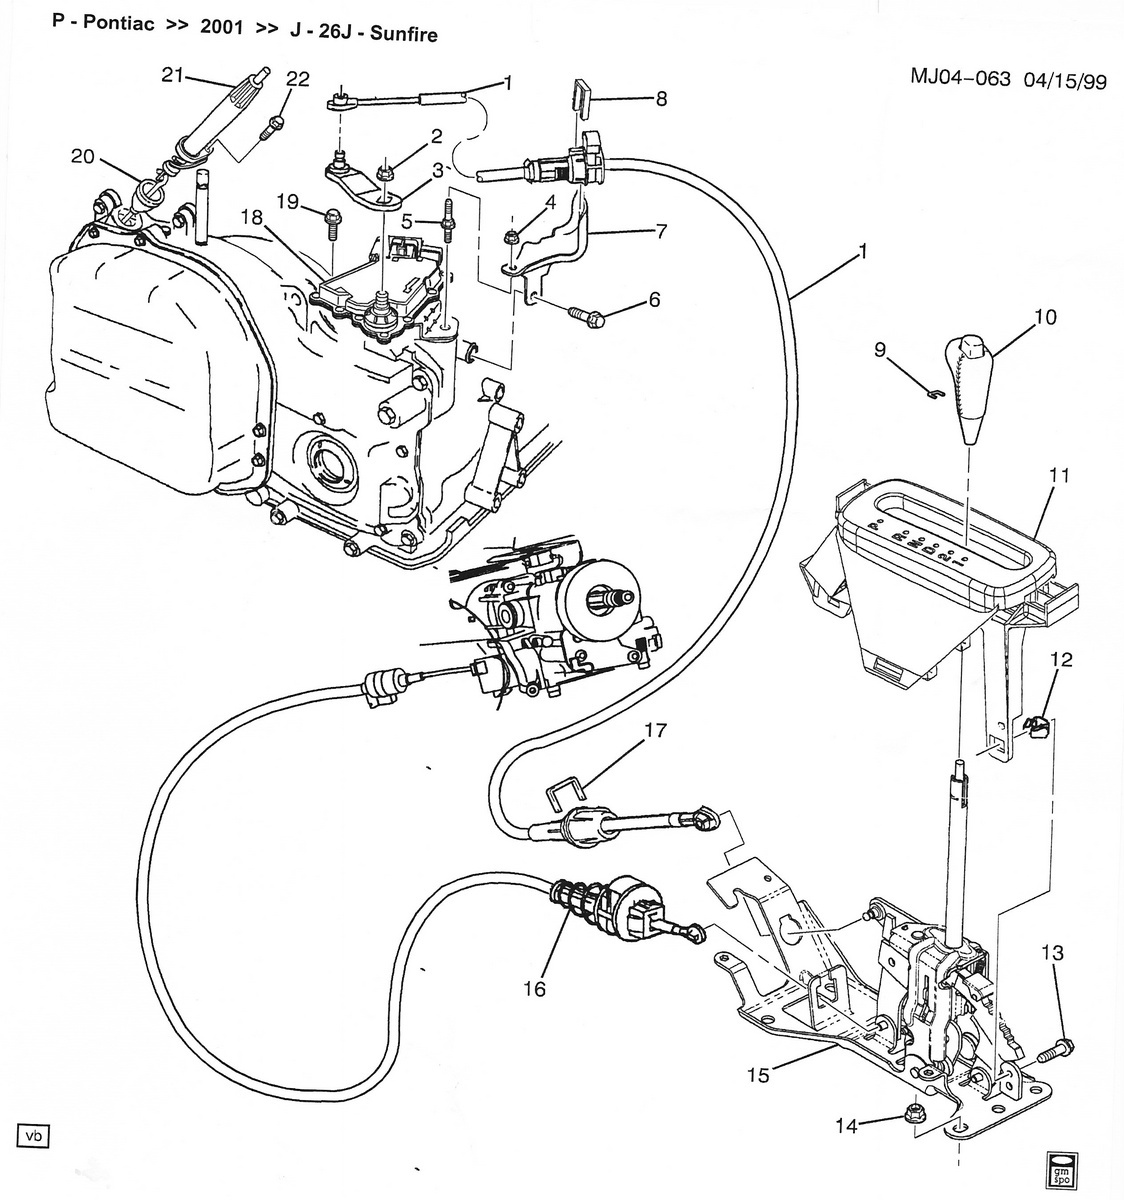 Chevy Cavalier Door Part Diagrams